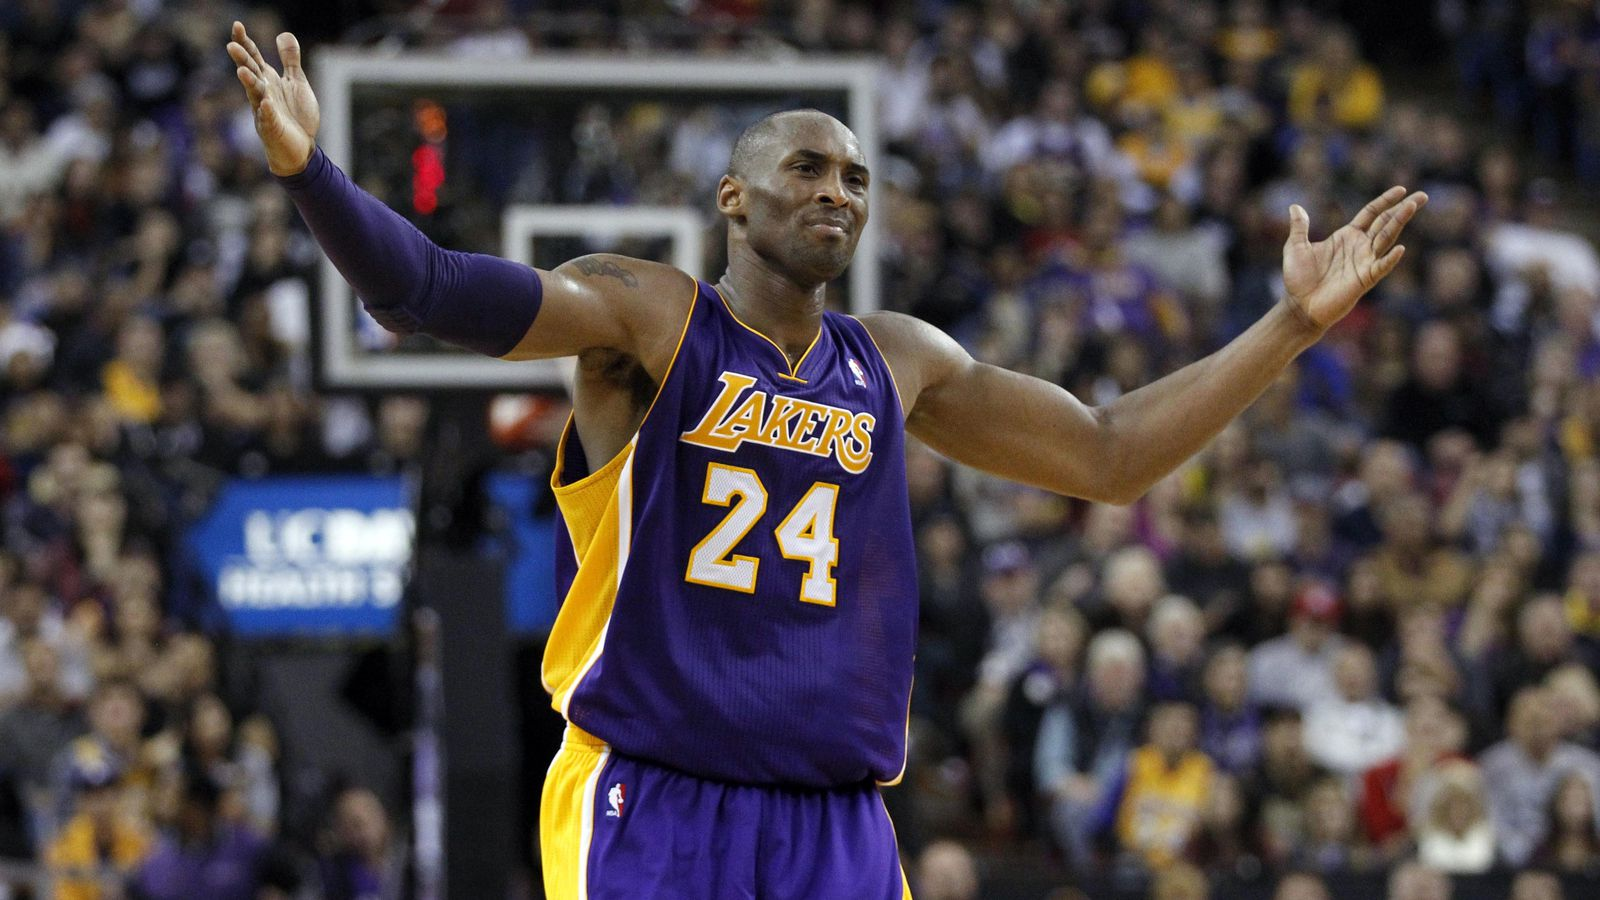 Kobe Bryant has missed more shots than any player in NBA history